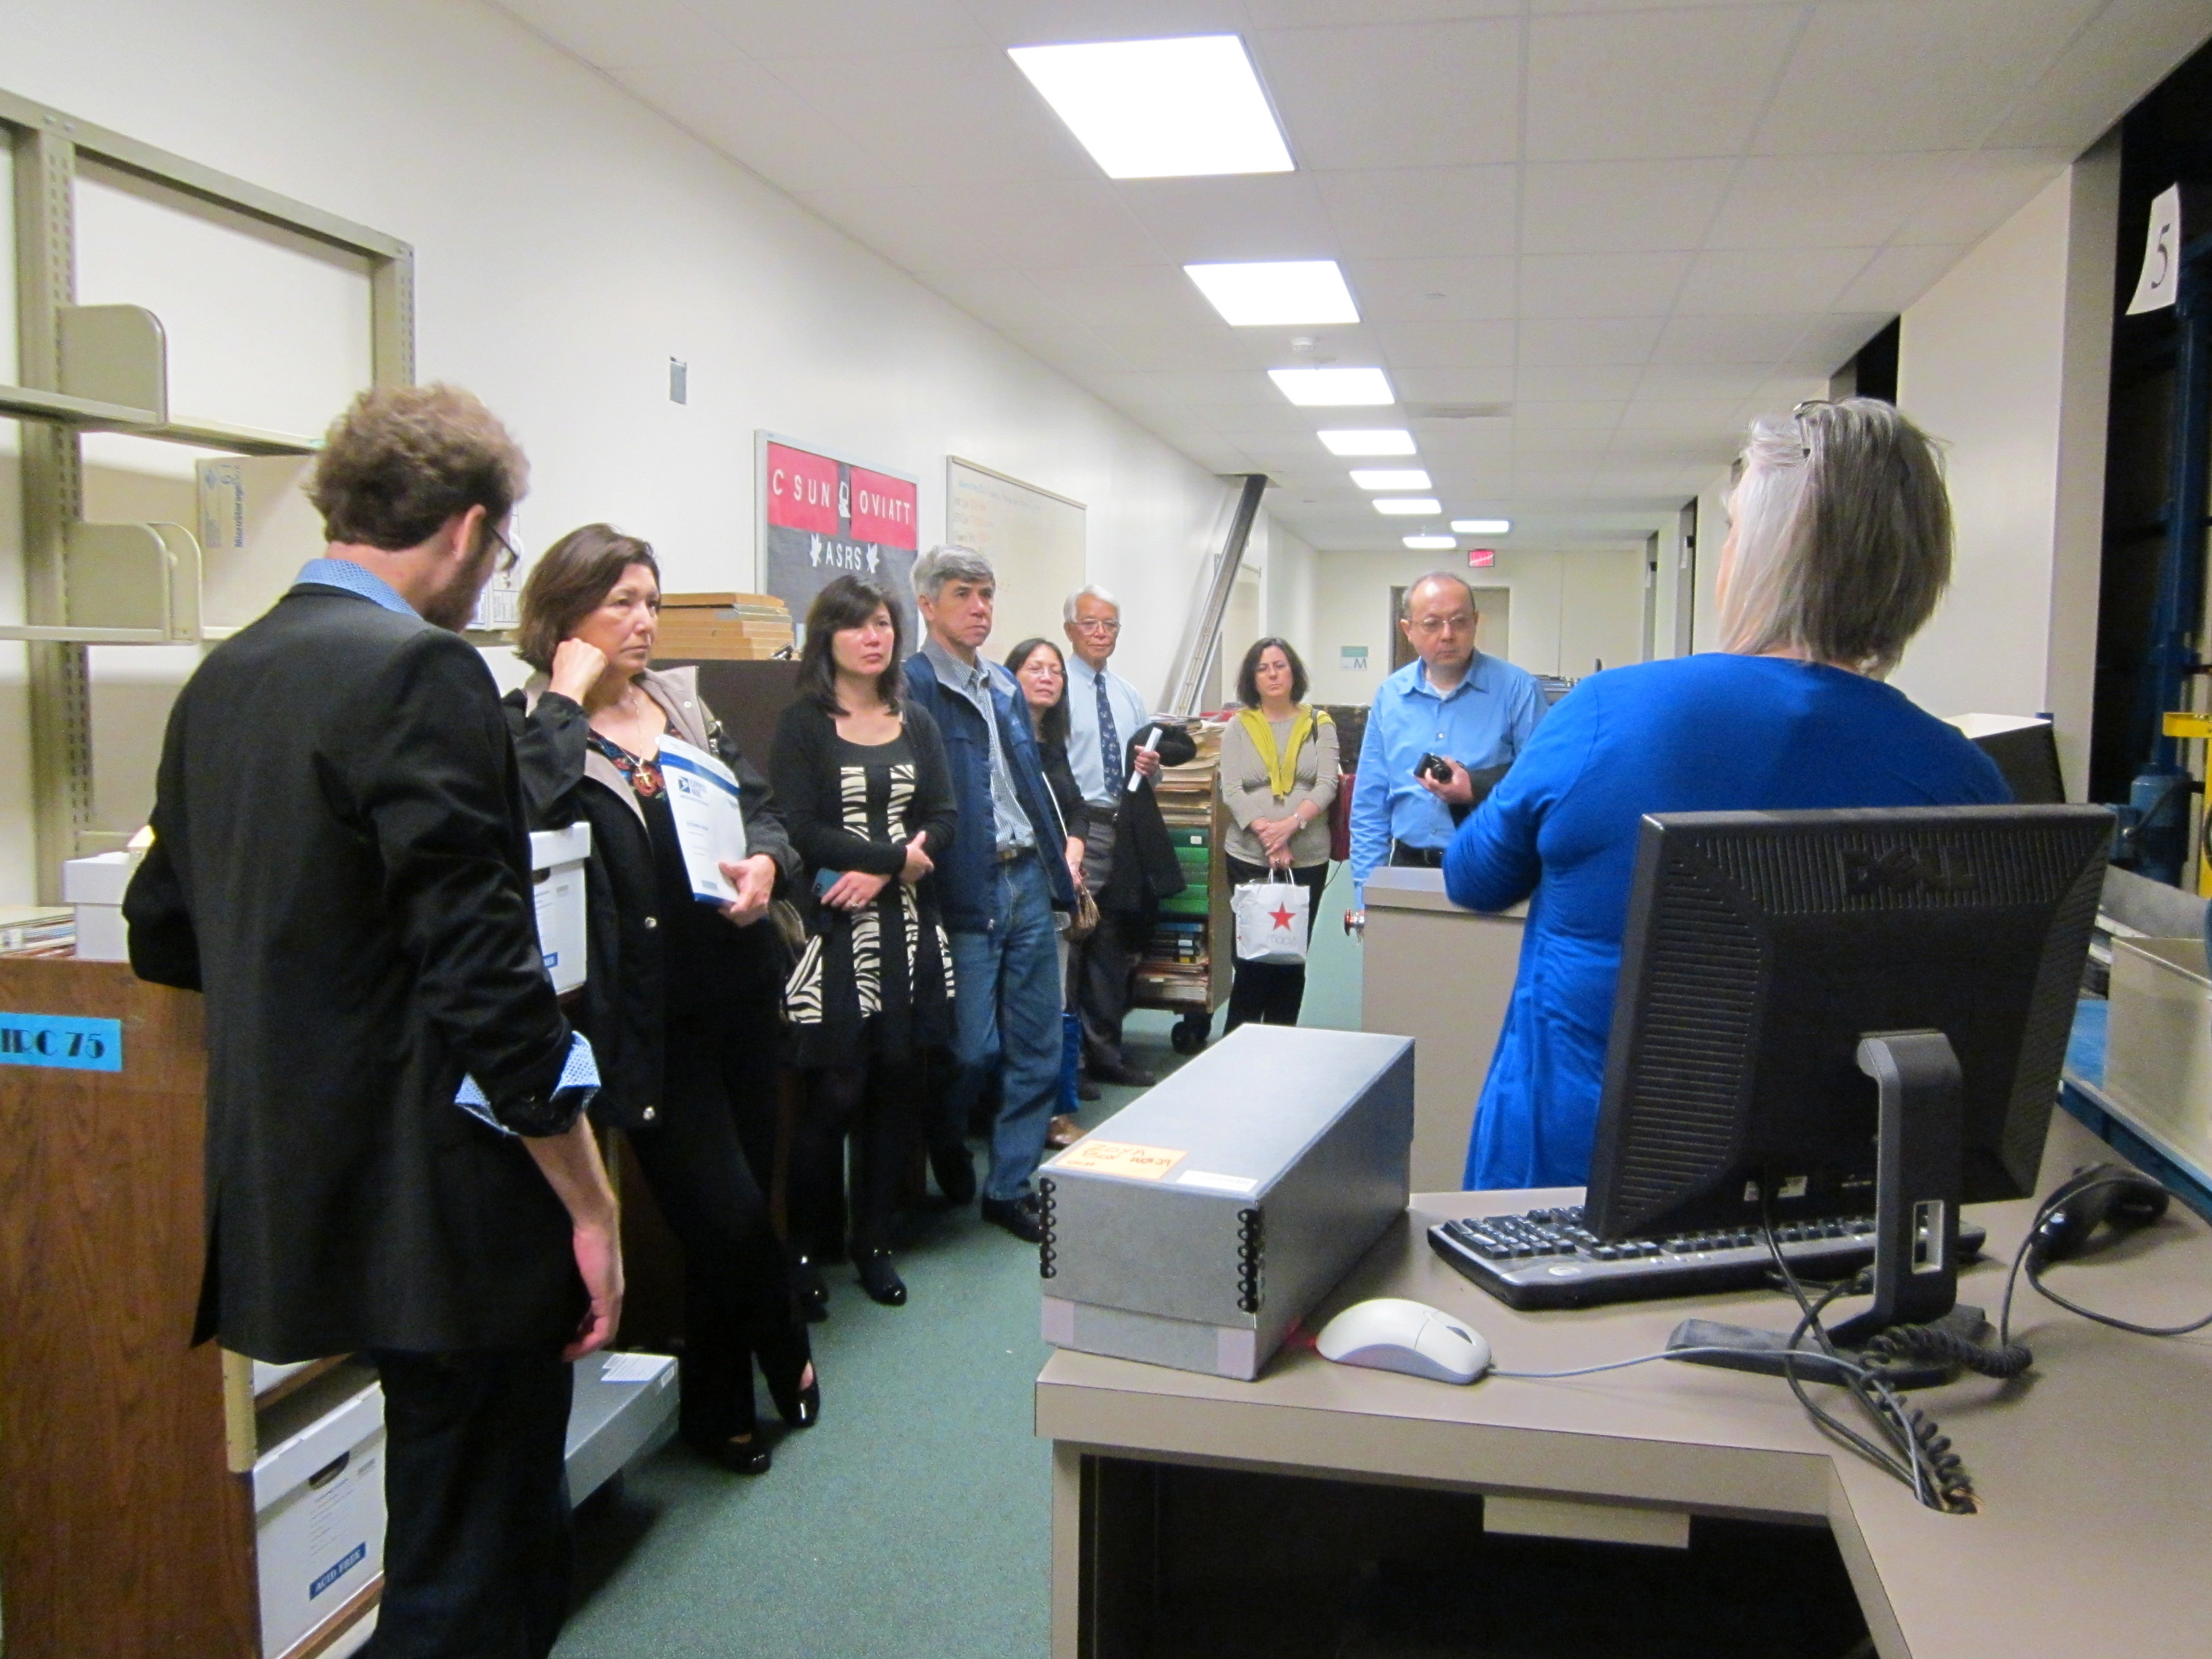 Visitors from Northern California are introduced to the automated storage system by Project Archivist Vicki Schmidtberger